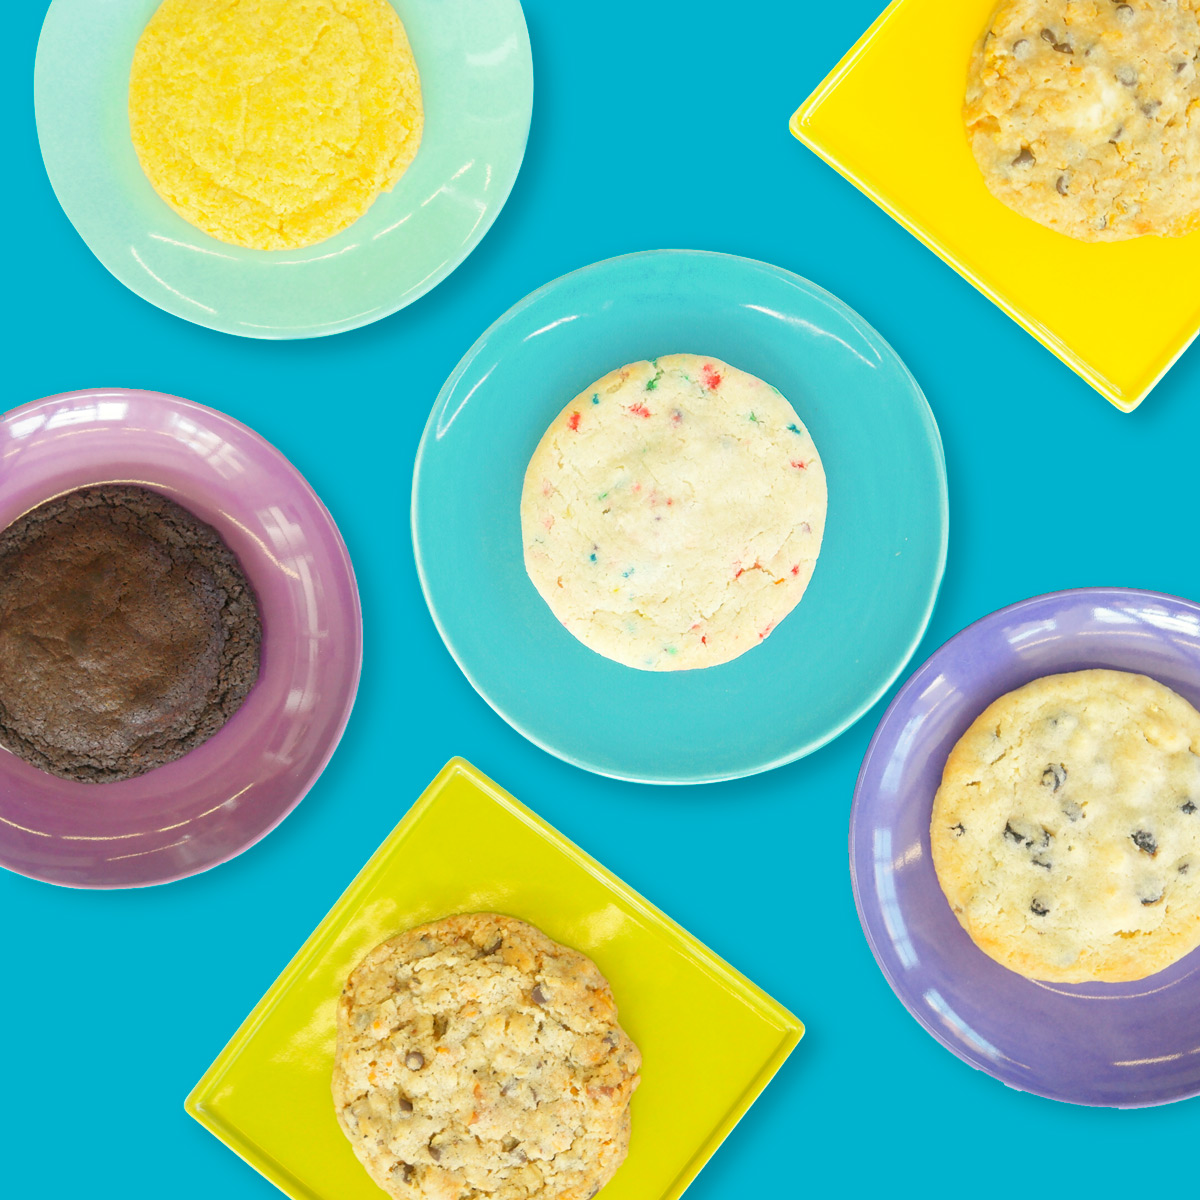 flat lay photograph of cookies on multiple plate colors in style of candy minimalism